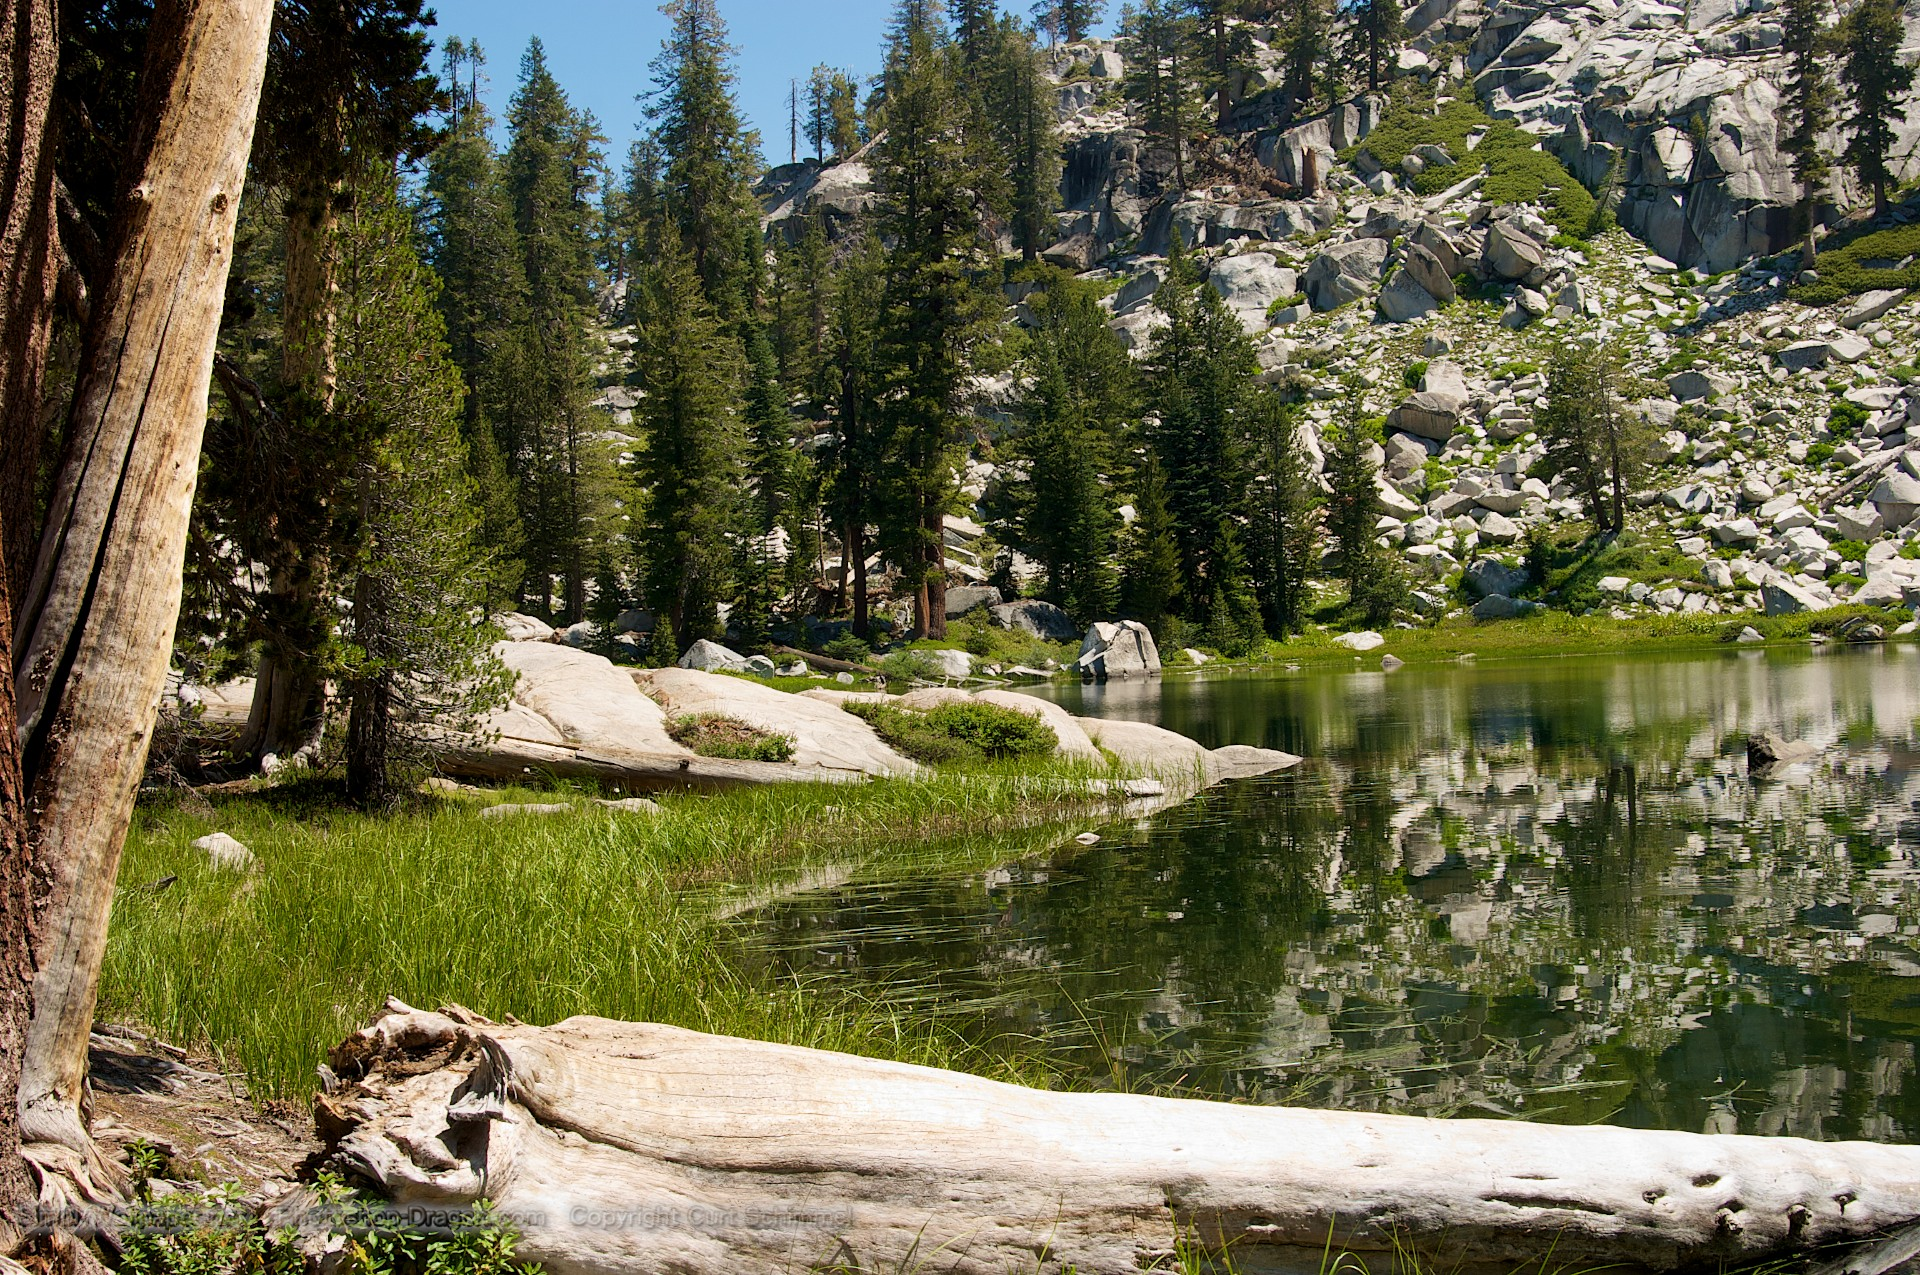 Secluded Pond at Sequoia National Park wallpaper   Click picture for 1920x1275